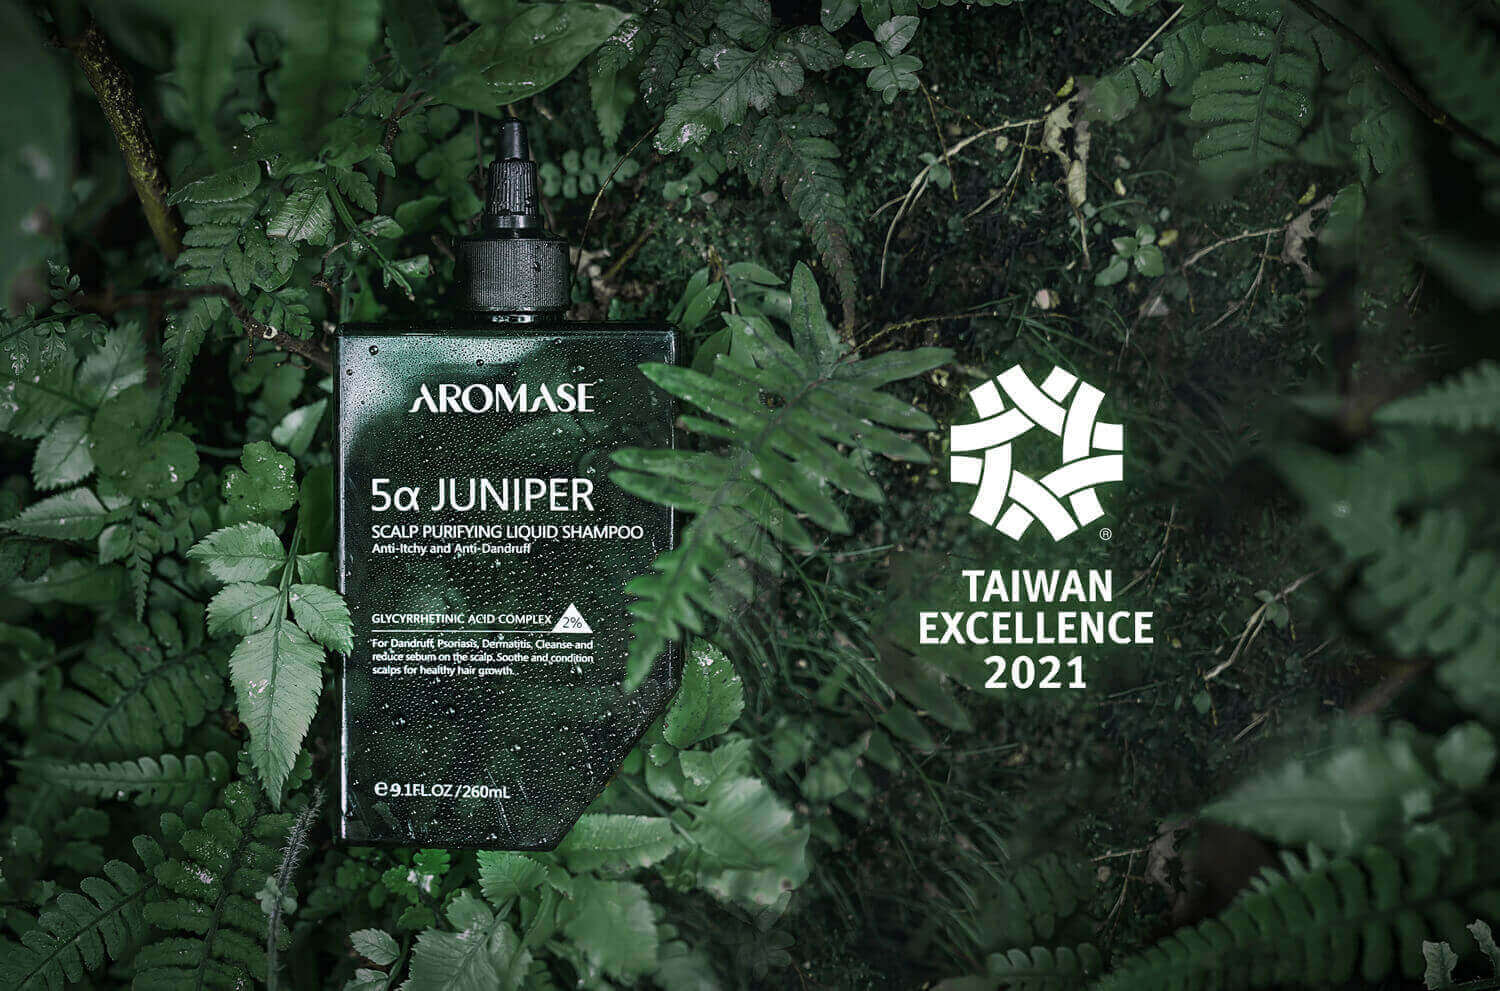 Awards-Taiwan excellence-AROMASE